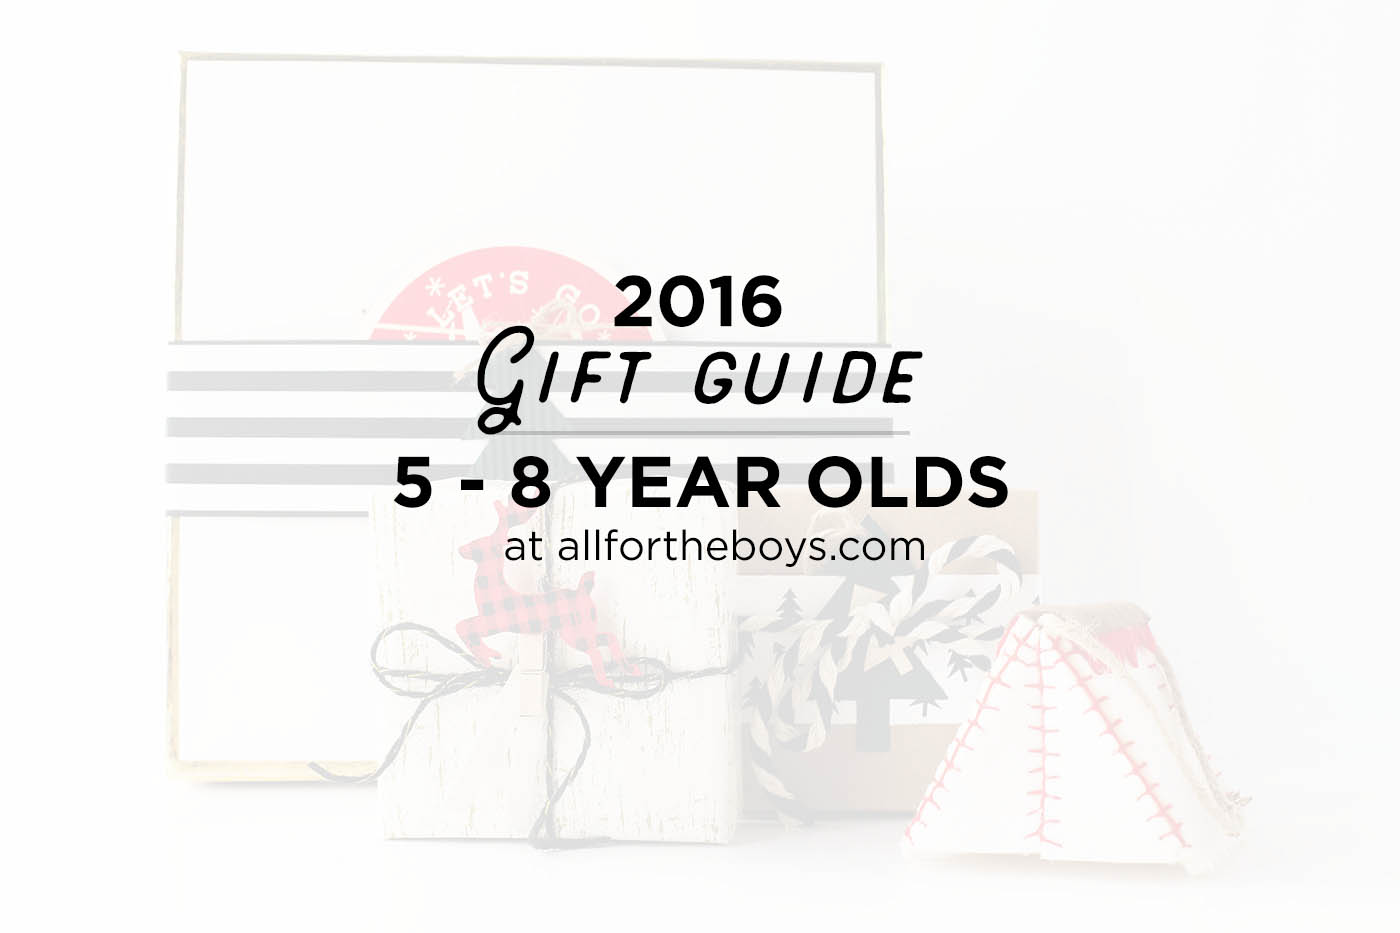 Gift Guide 2016: 5-8 Year Olds — All for the Boys